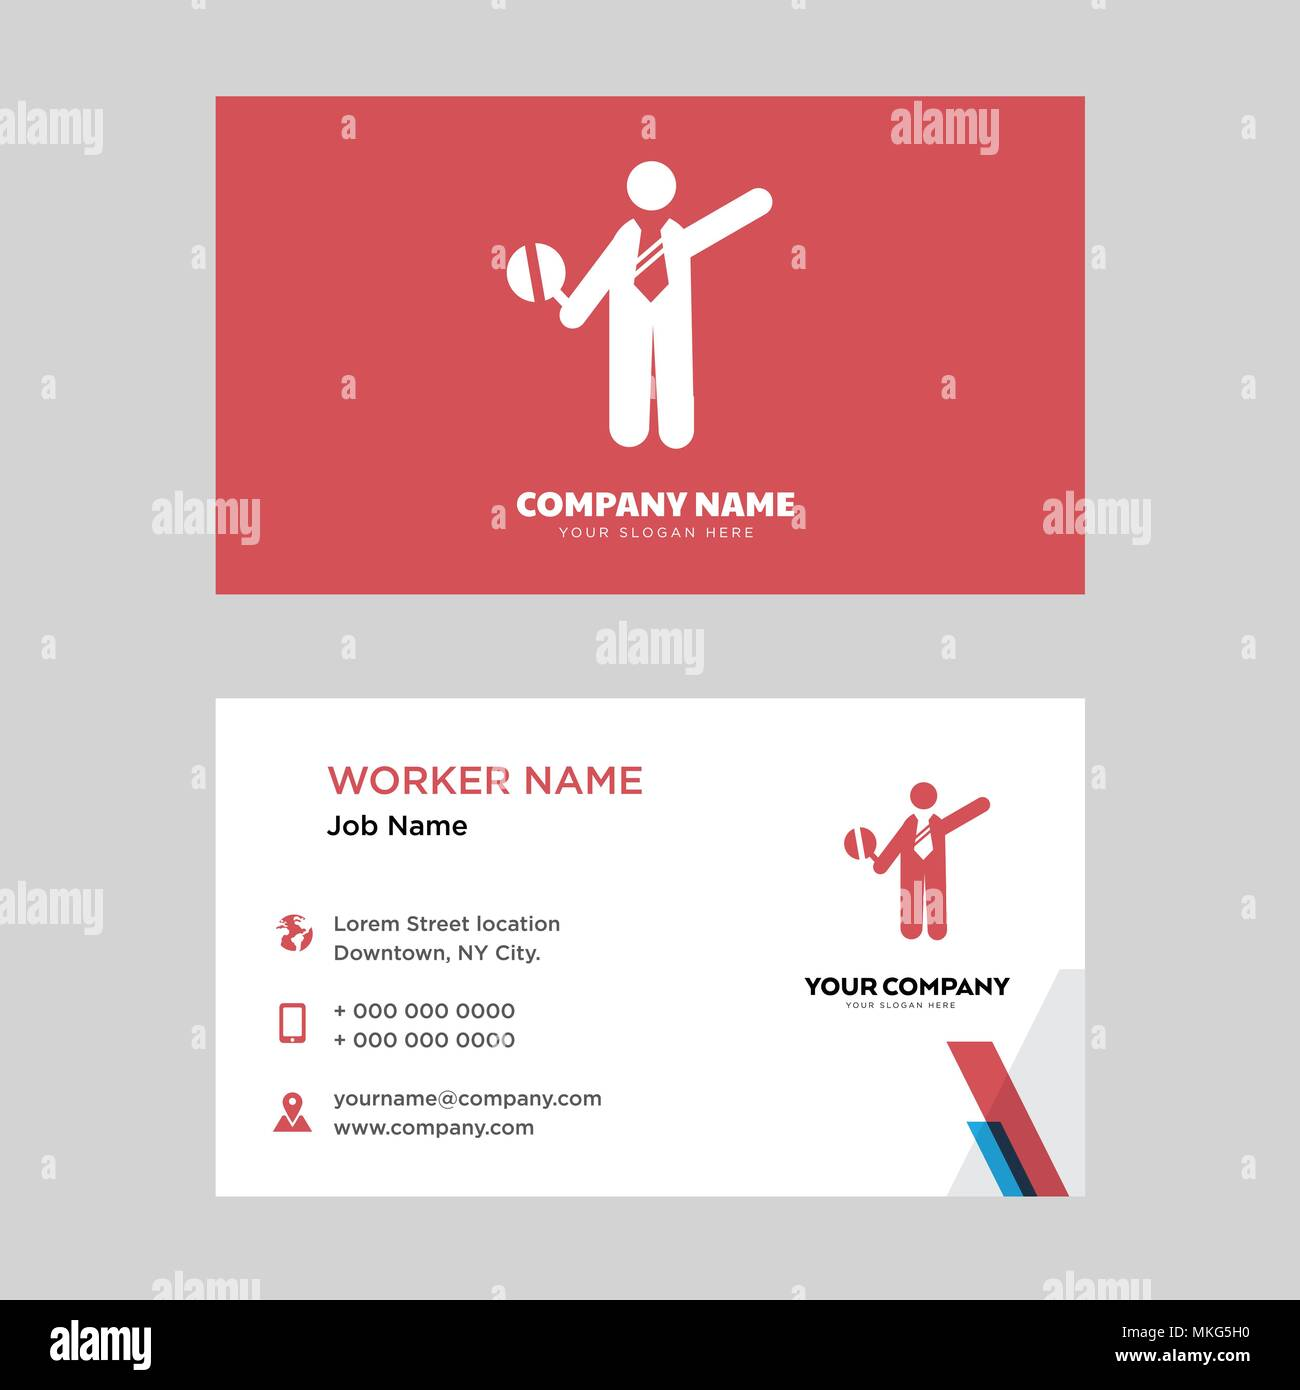 Traffic police business card design template visiting for your traffic police business card design template visiting for your company modern horizontal identity card vector fbccfo Gallery